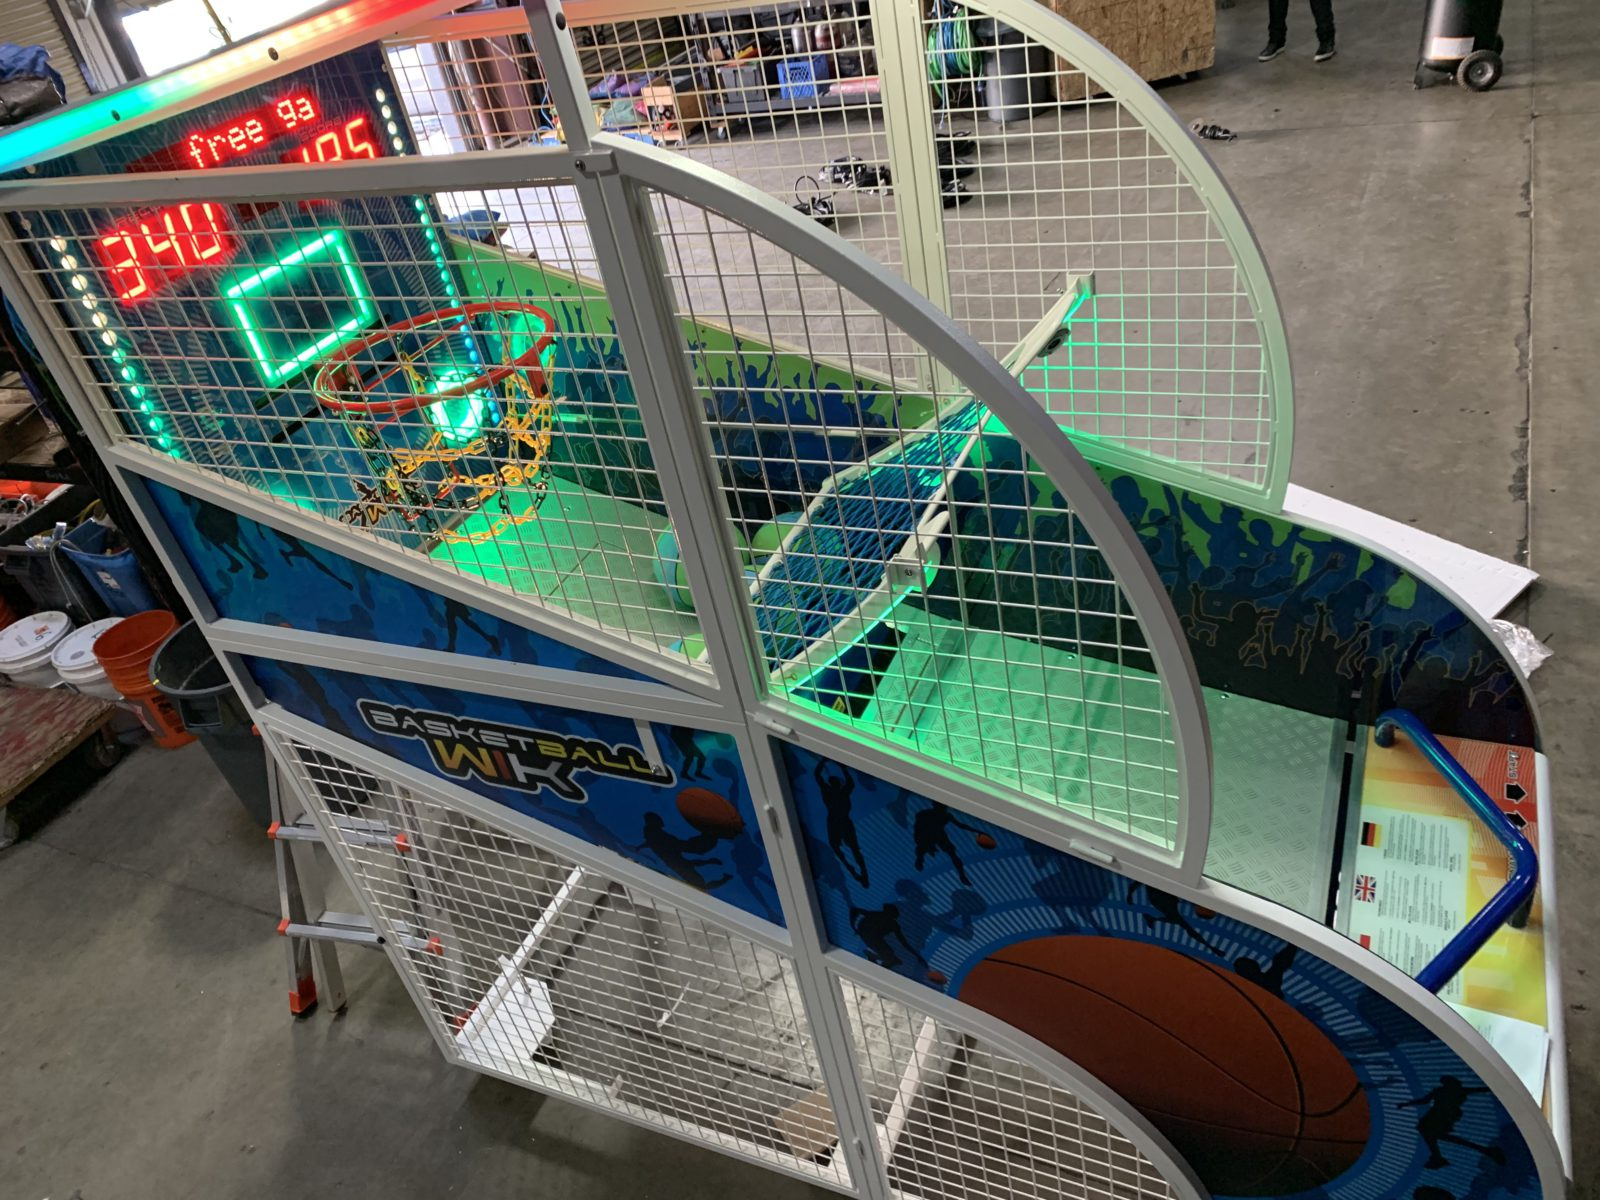 glow in the dark basketball arcade game